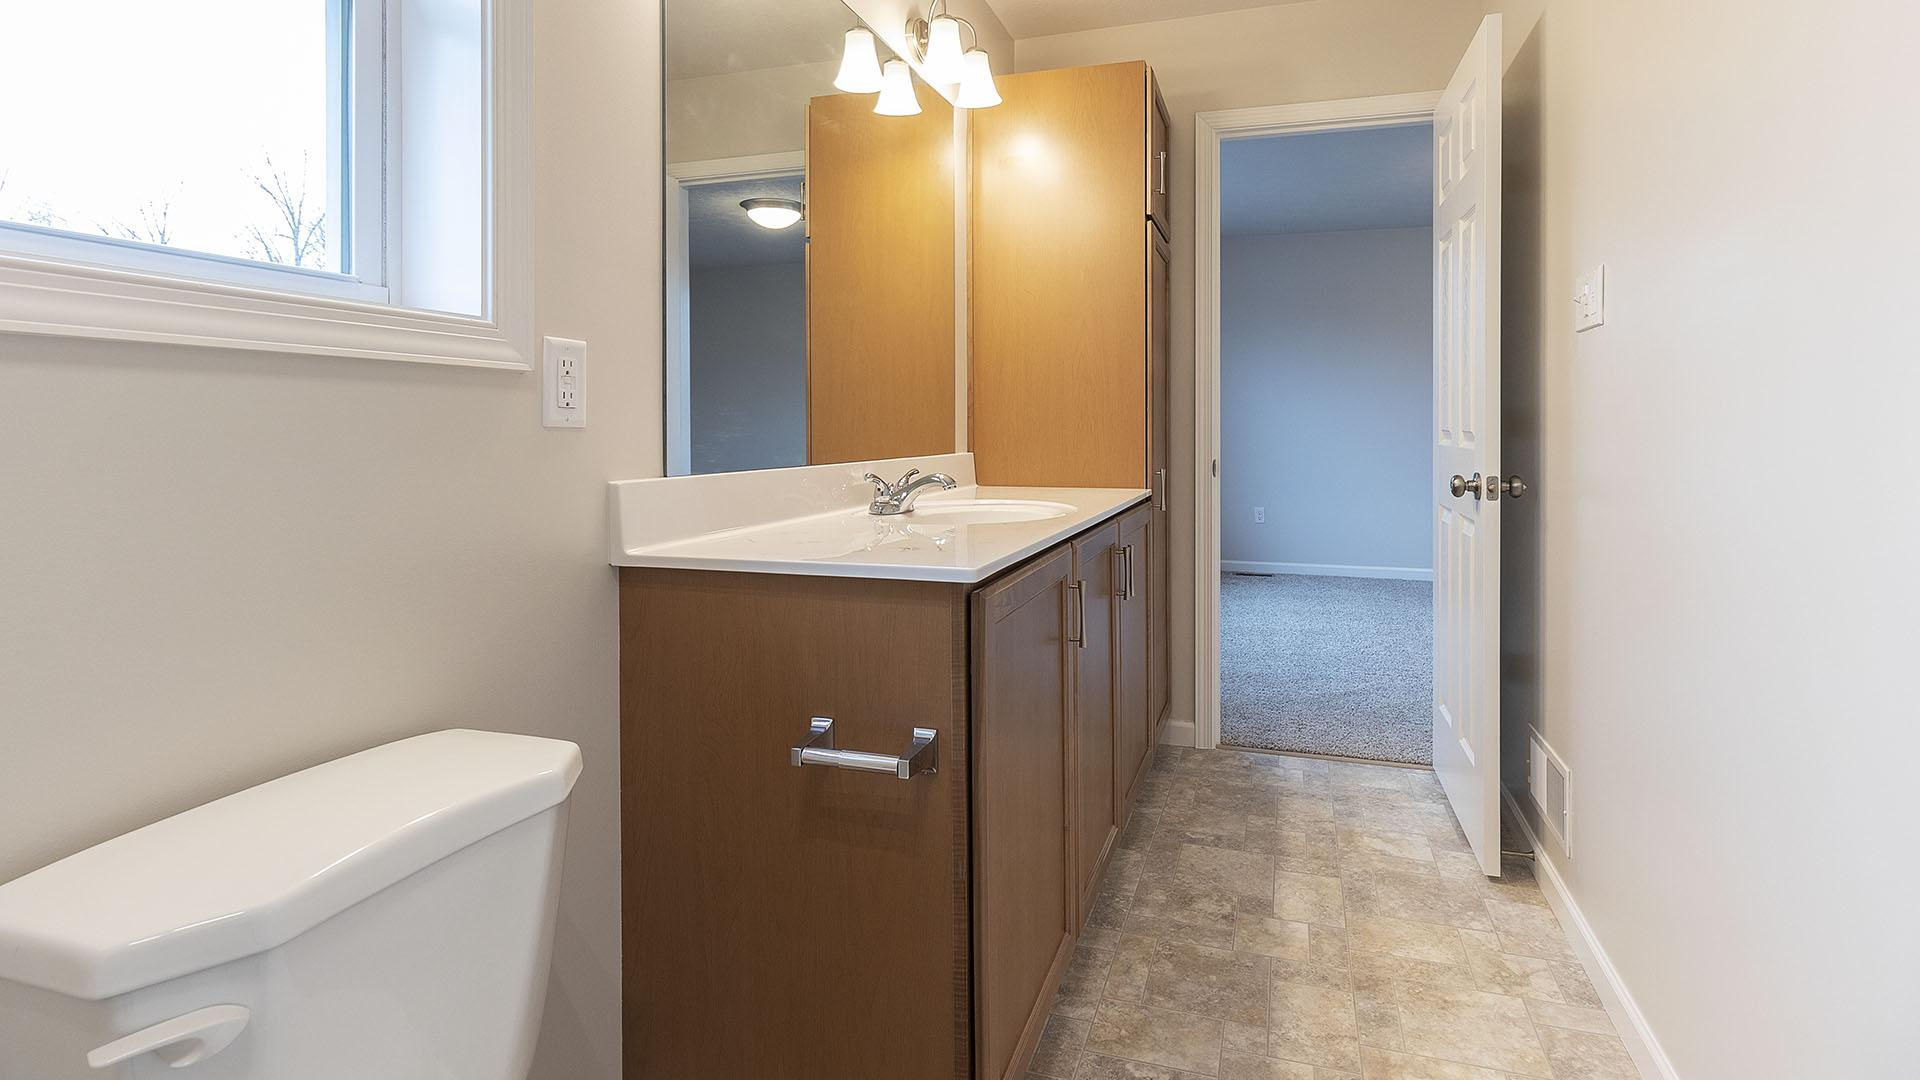 Bathroom featured in the Glynwood By S & A Homes in Altoona, PA